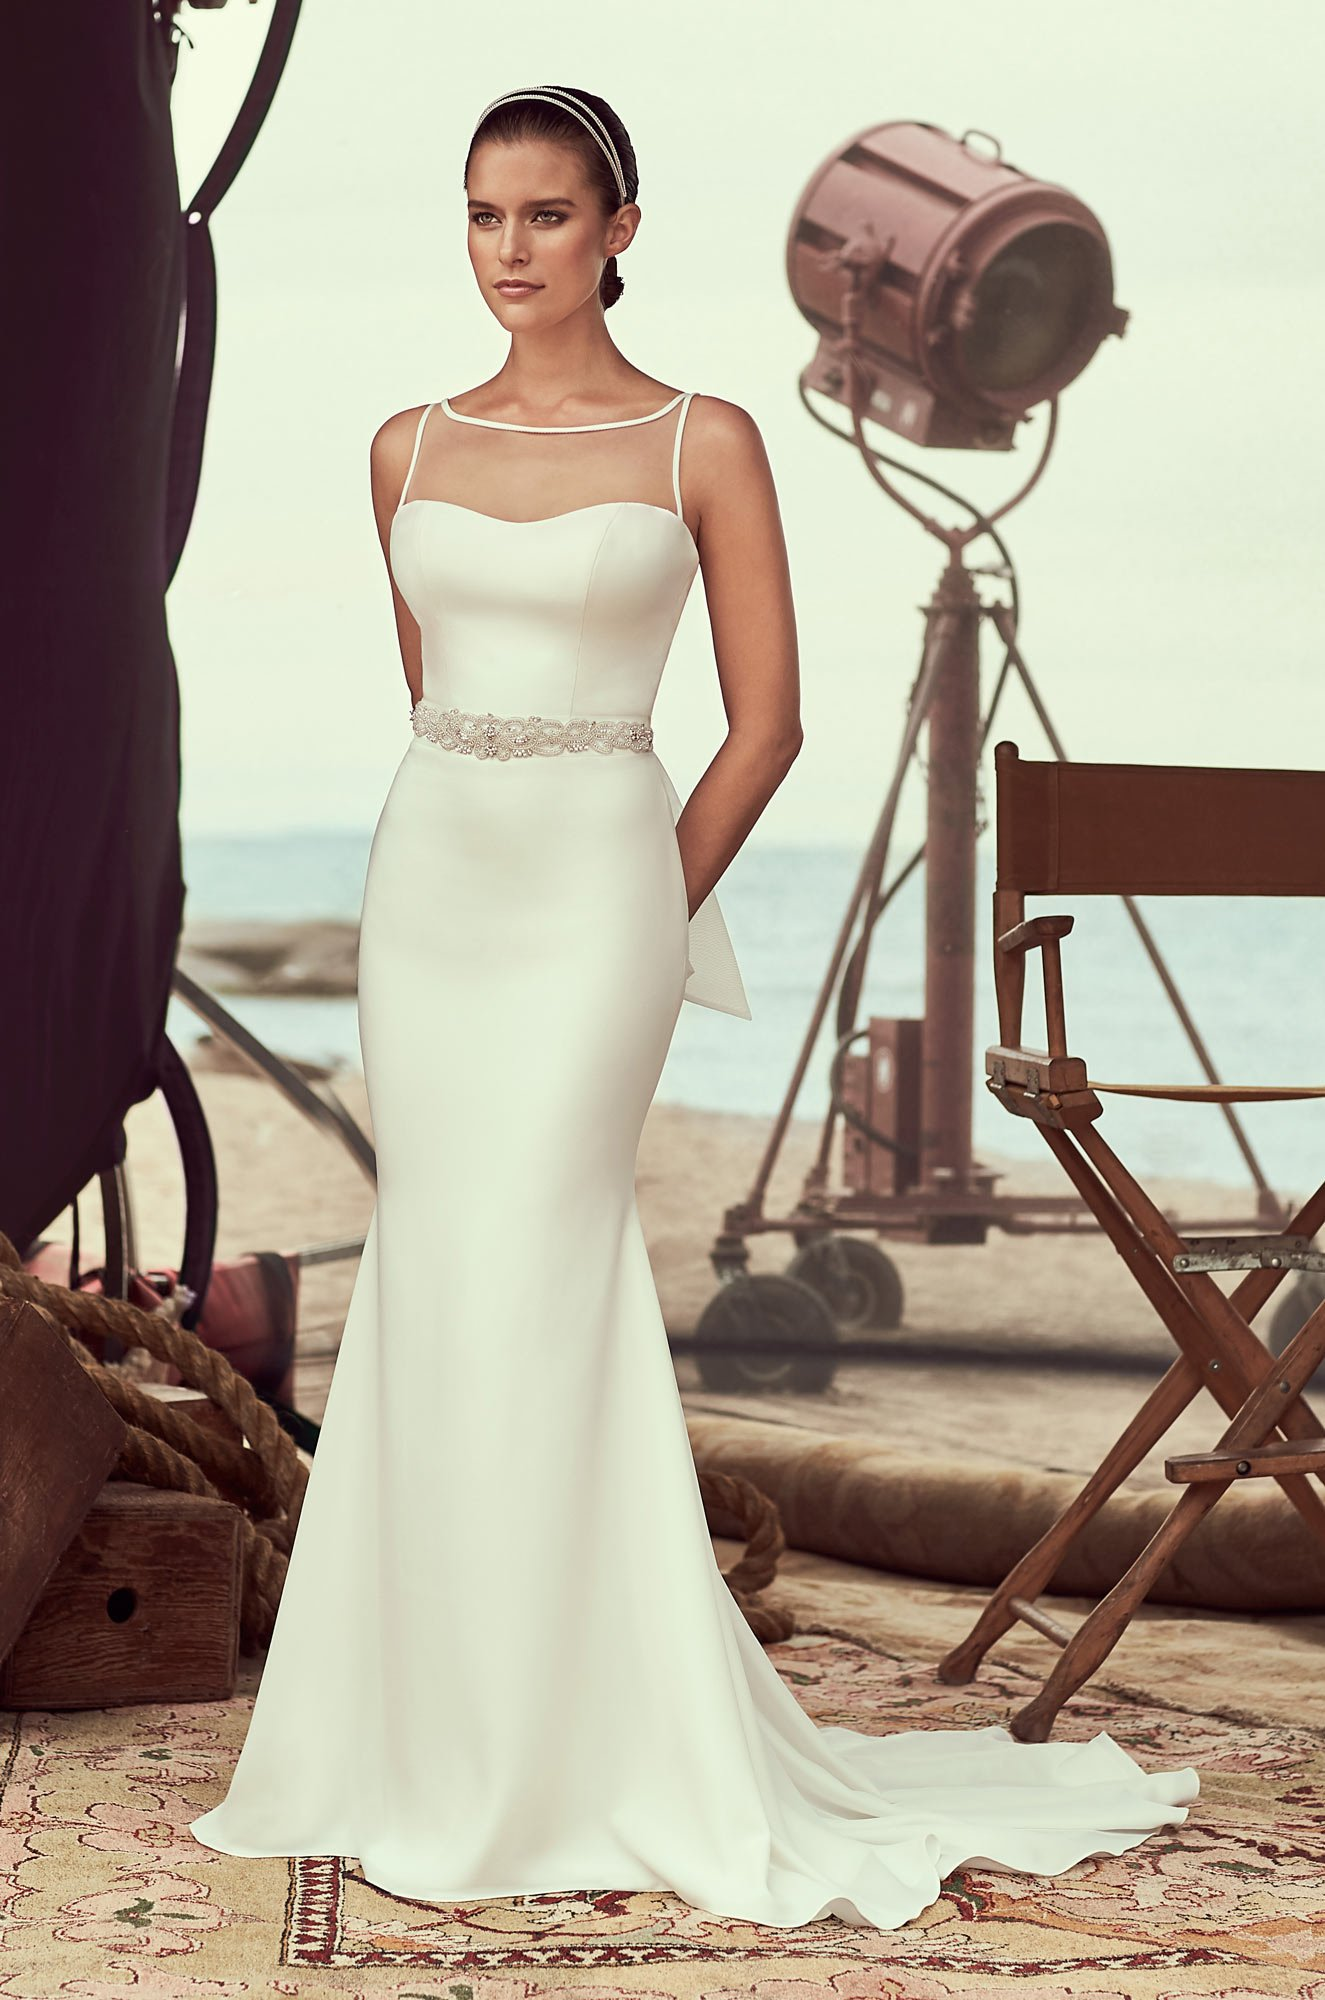 Bateau Neckline Wedding Dress - Style #2183 | Mikaella Bridal